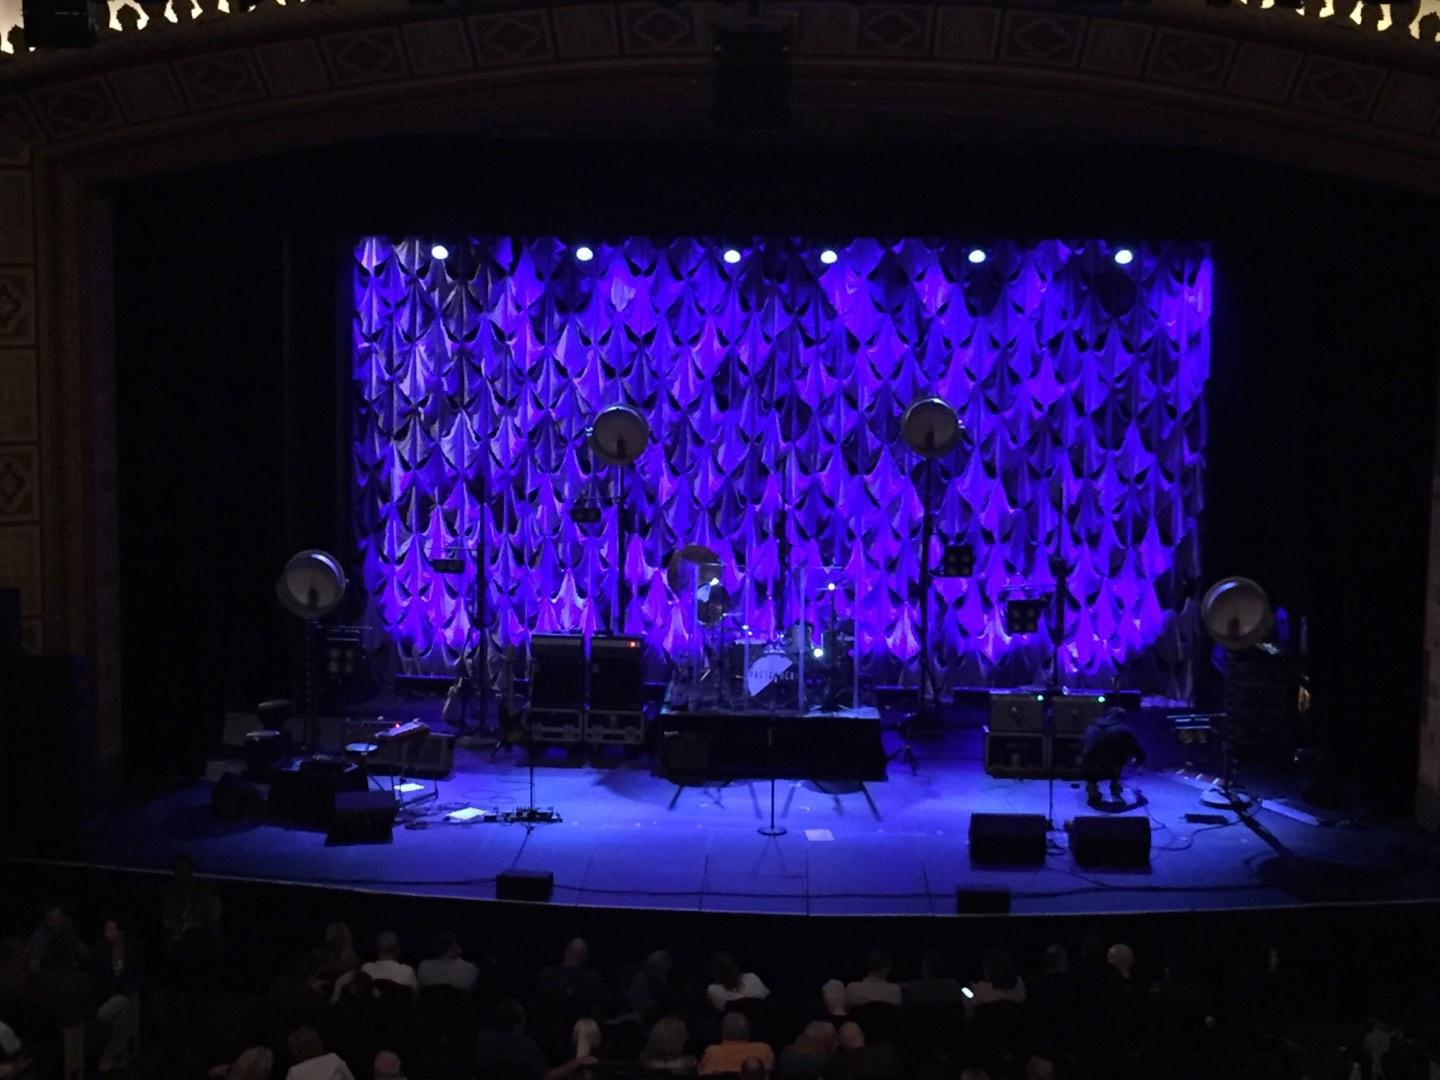 Count Basie Theatre Section Loge Row C Seat 108